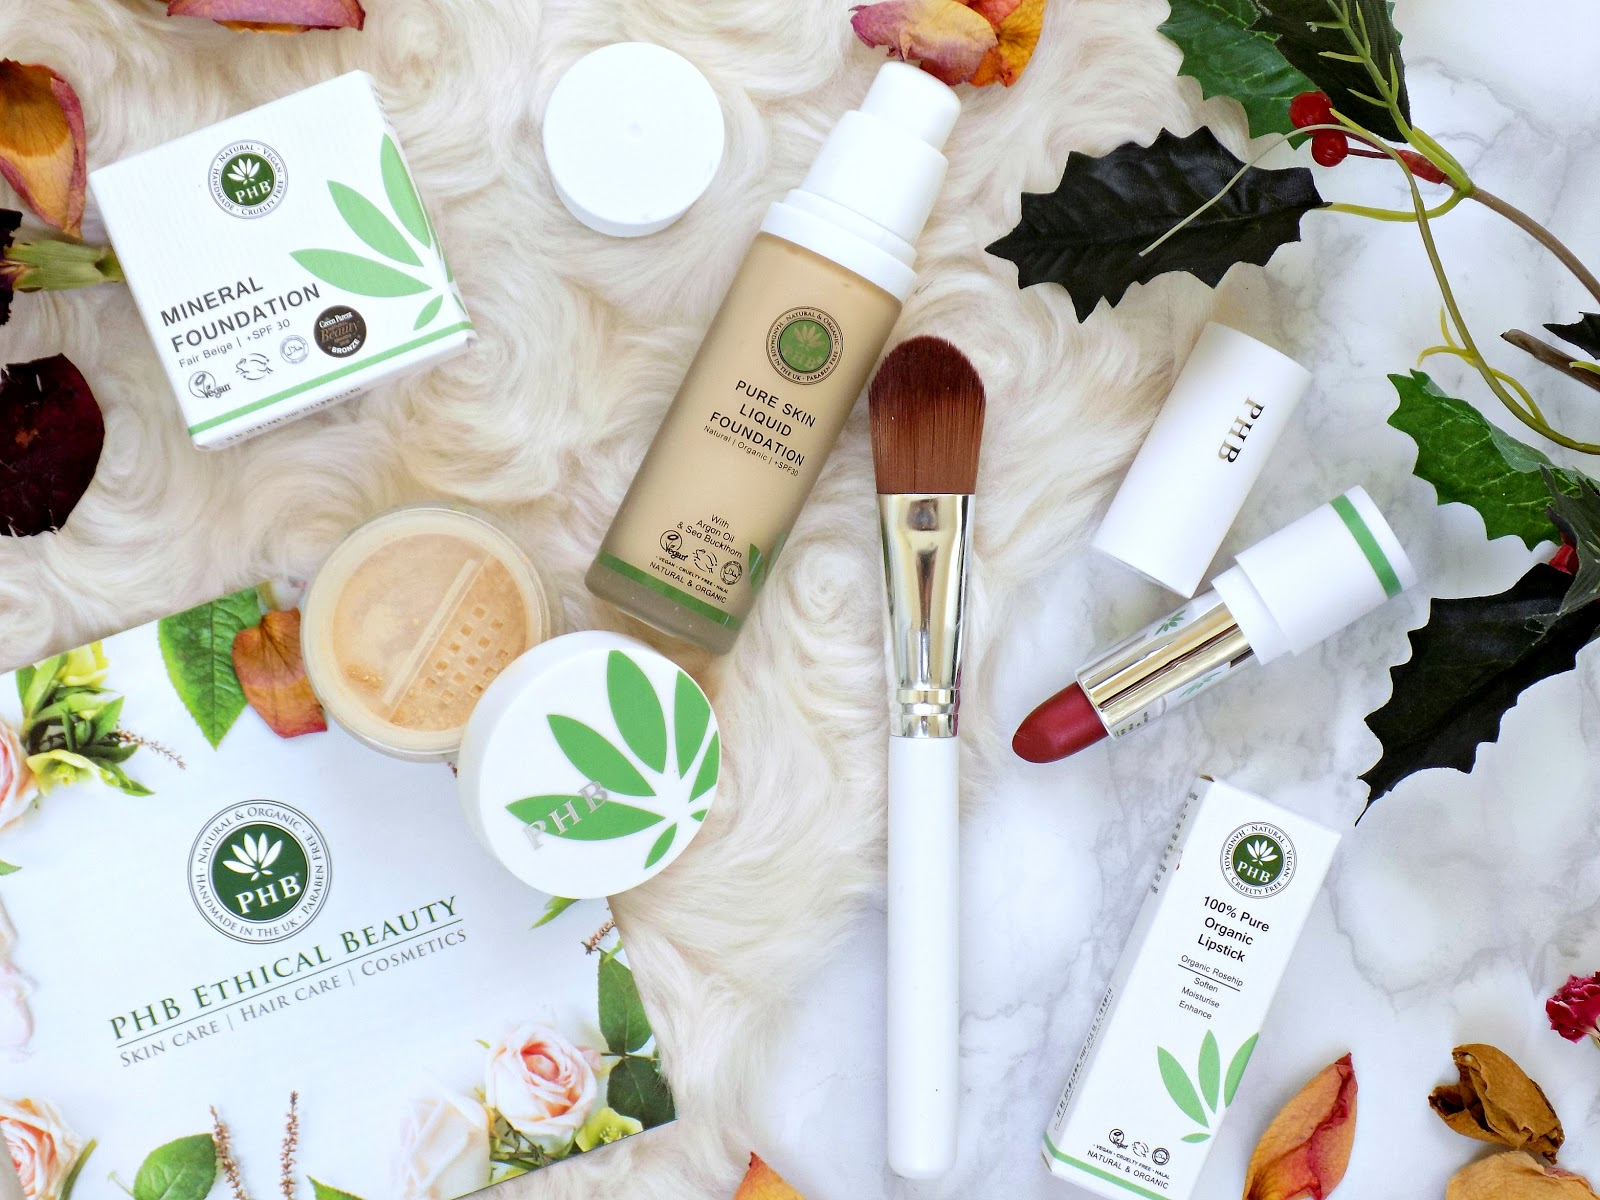 PHB Ethical Beauty makeup products